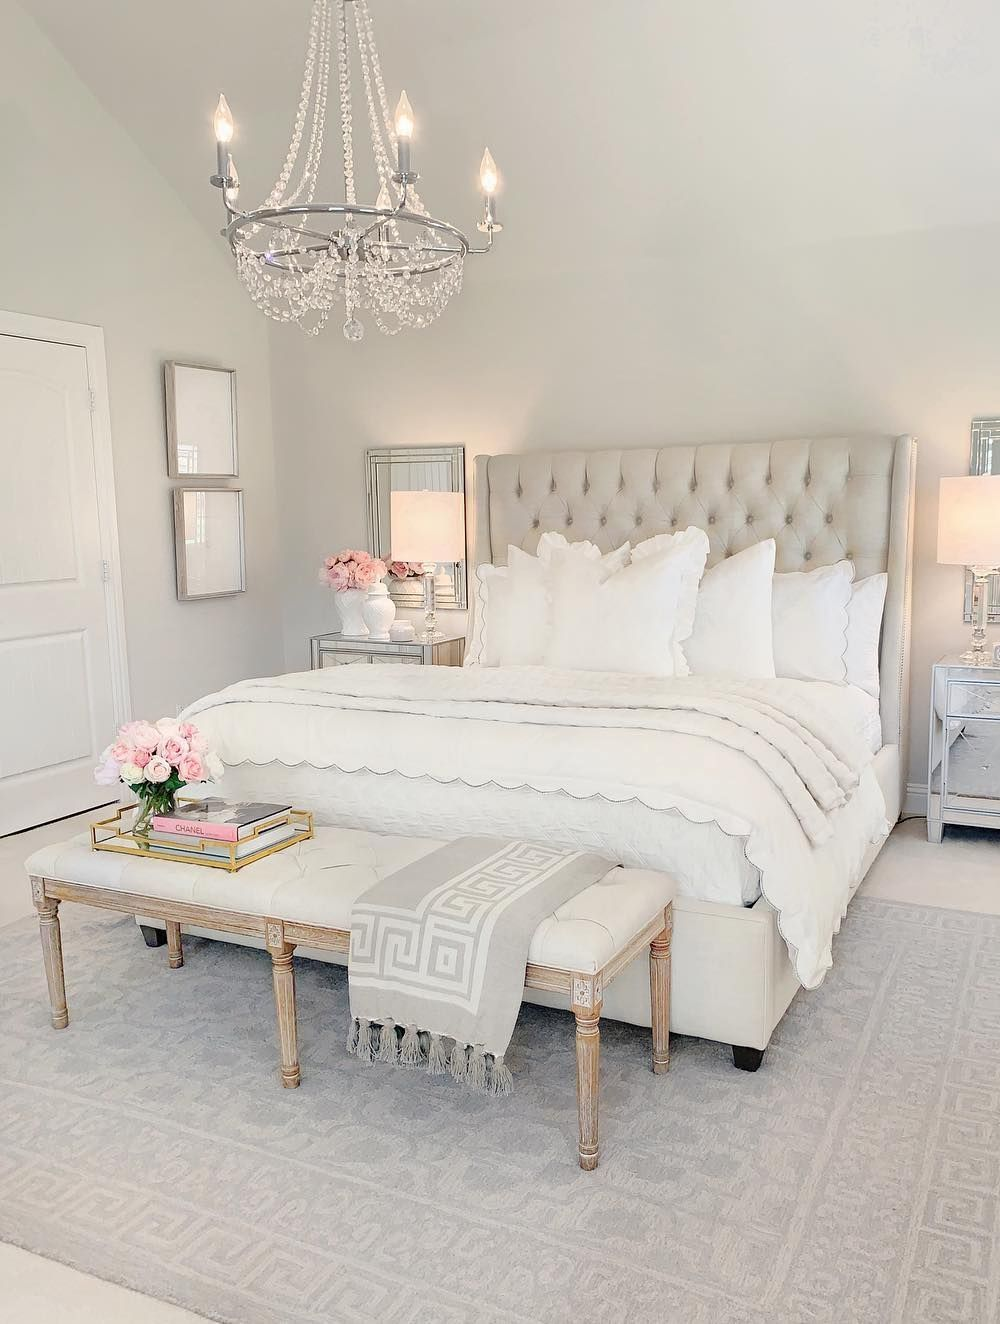 Neutral Beige Tufted Headboard In Bedroom With White Tufted End Of Bed Bench Via Thedecordiet Bedroom Interior Bedroom Decor Luxurious Bedrooms Home bedroom makeover diy upholstered